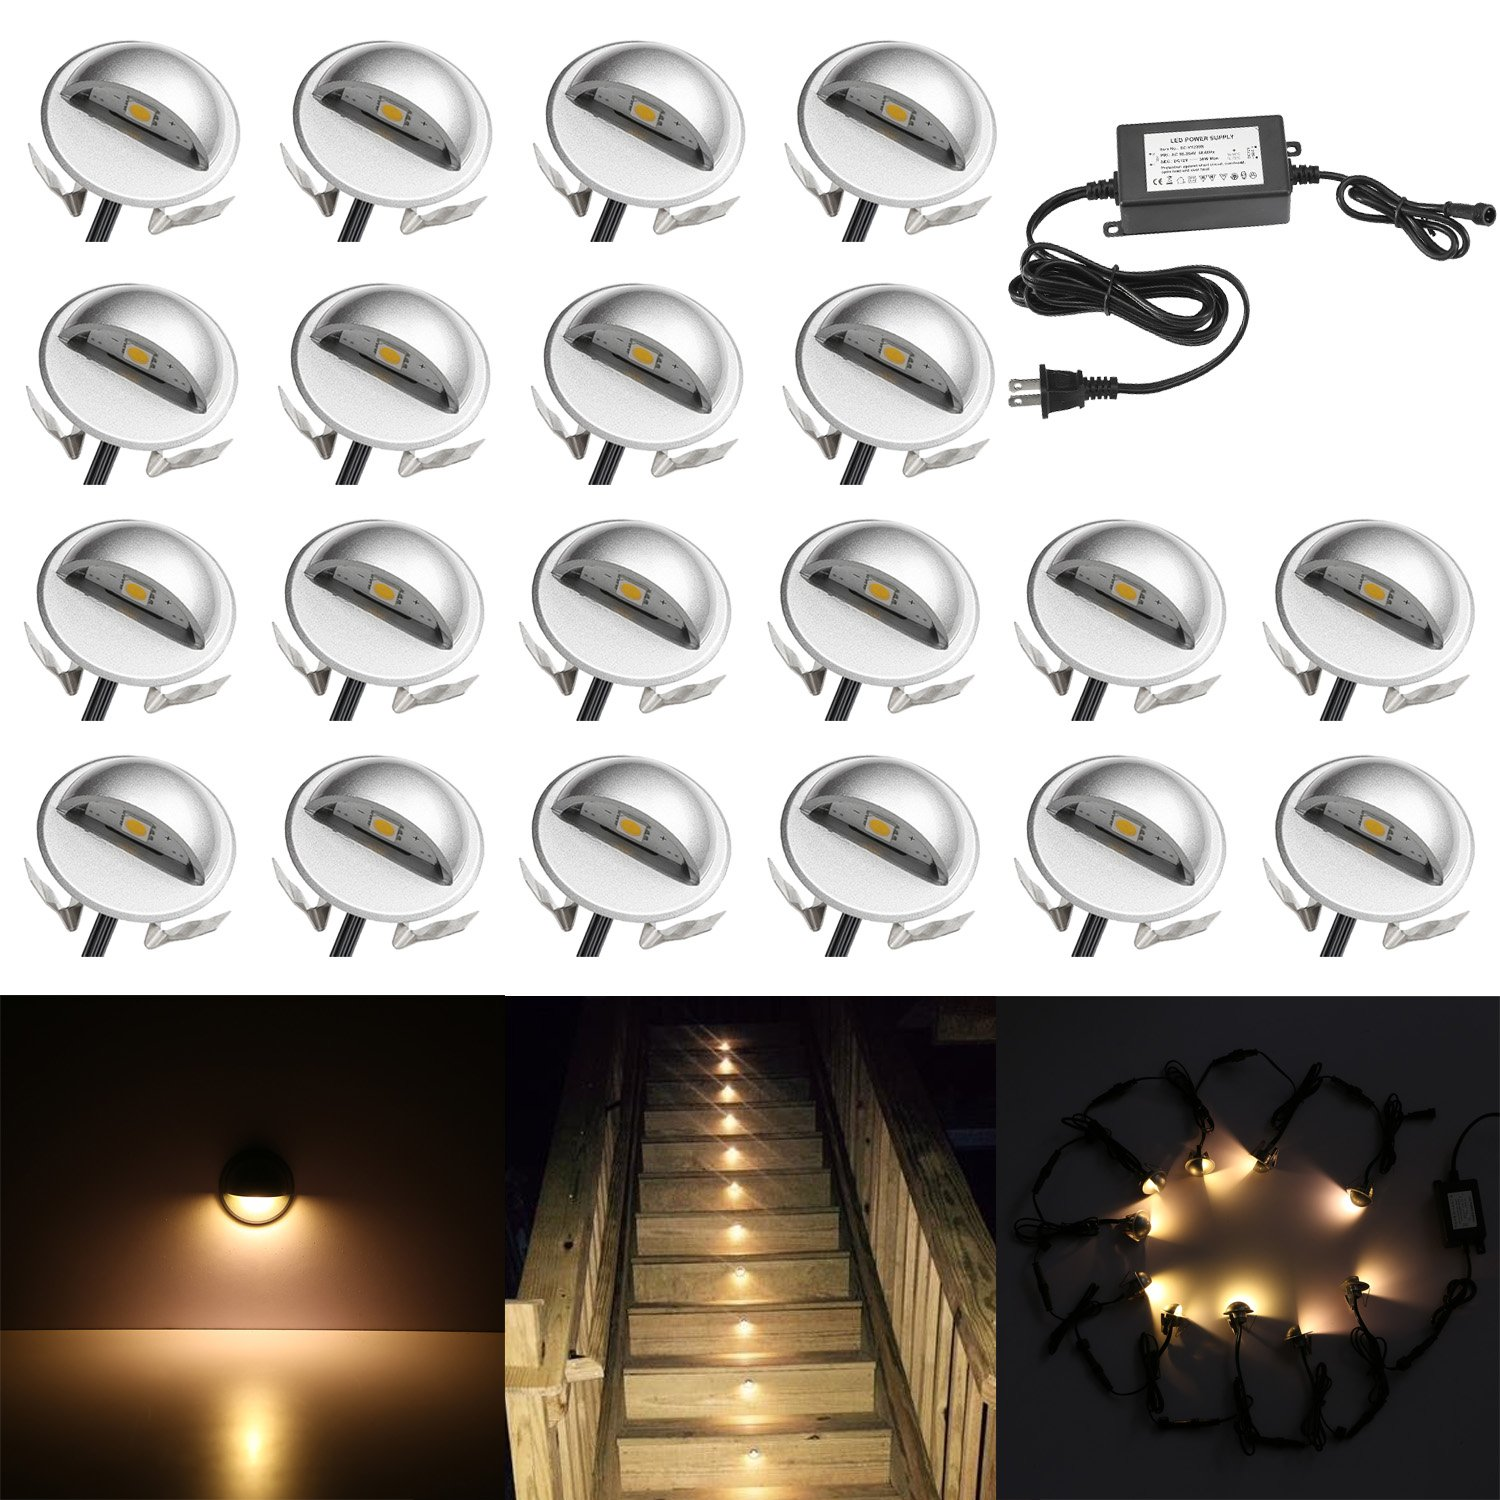 QACA 20 Pack LED Stair Lights Kit Low Voltage Waterproof IP65 Outdoor 1-2/5'' Recessed Wood LED Deck Lighting Yard Garden Patio Step Landscape Pathway Decor Lamps, Warm White by QACA